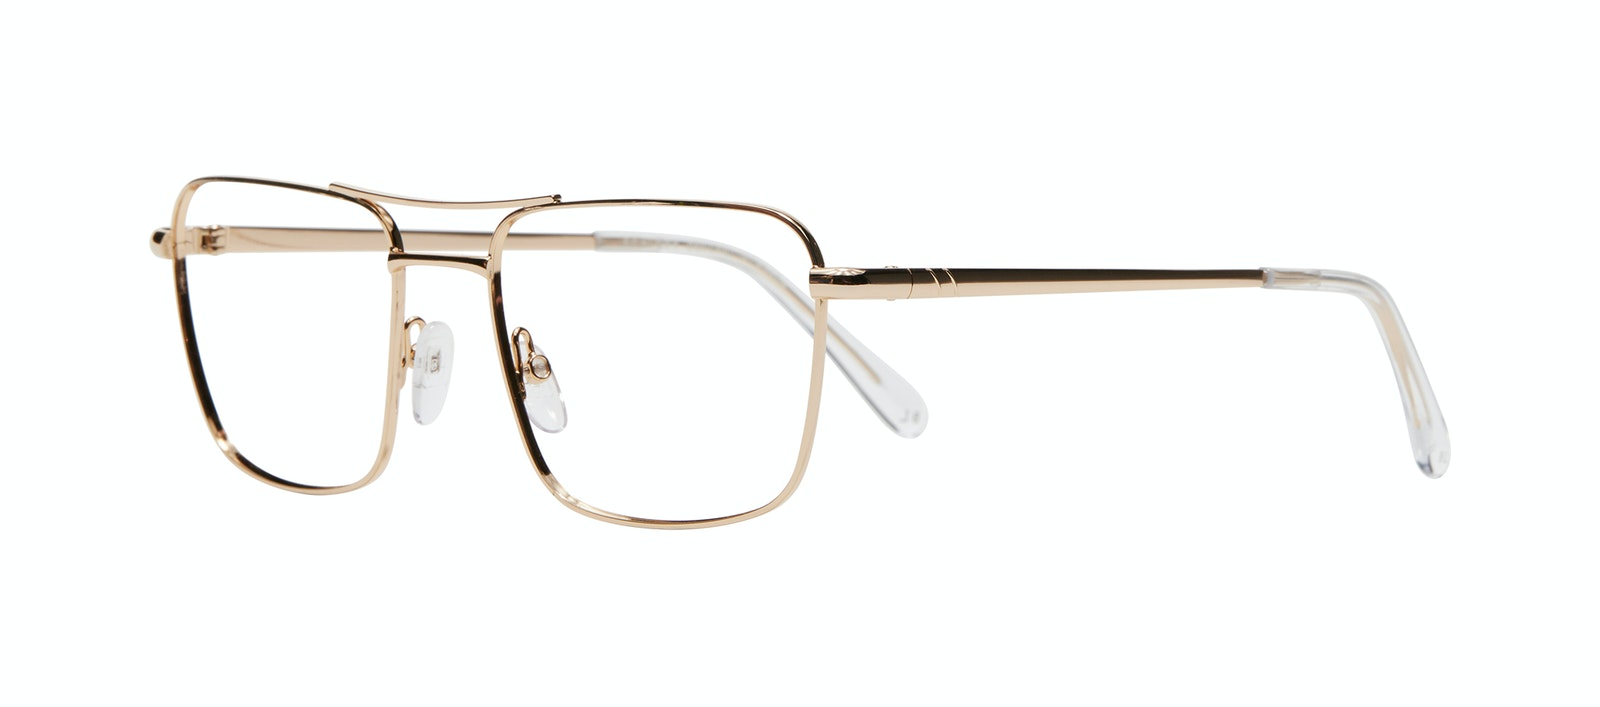 Affordable Fashion Glasses Aviator Eyeglasses Men Emerge Gold Tilt